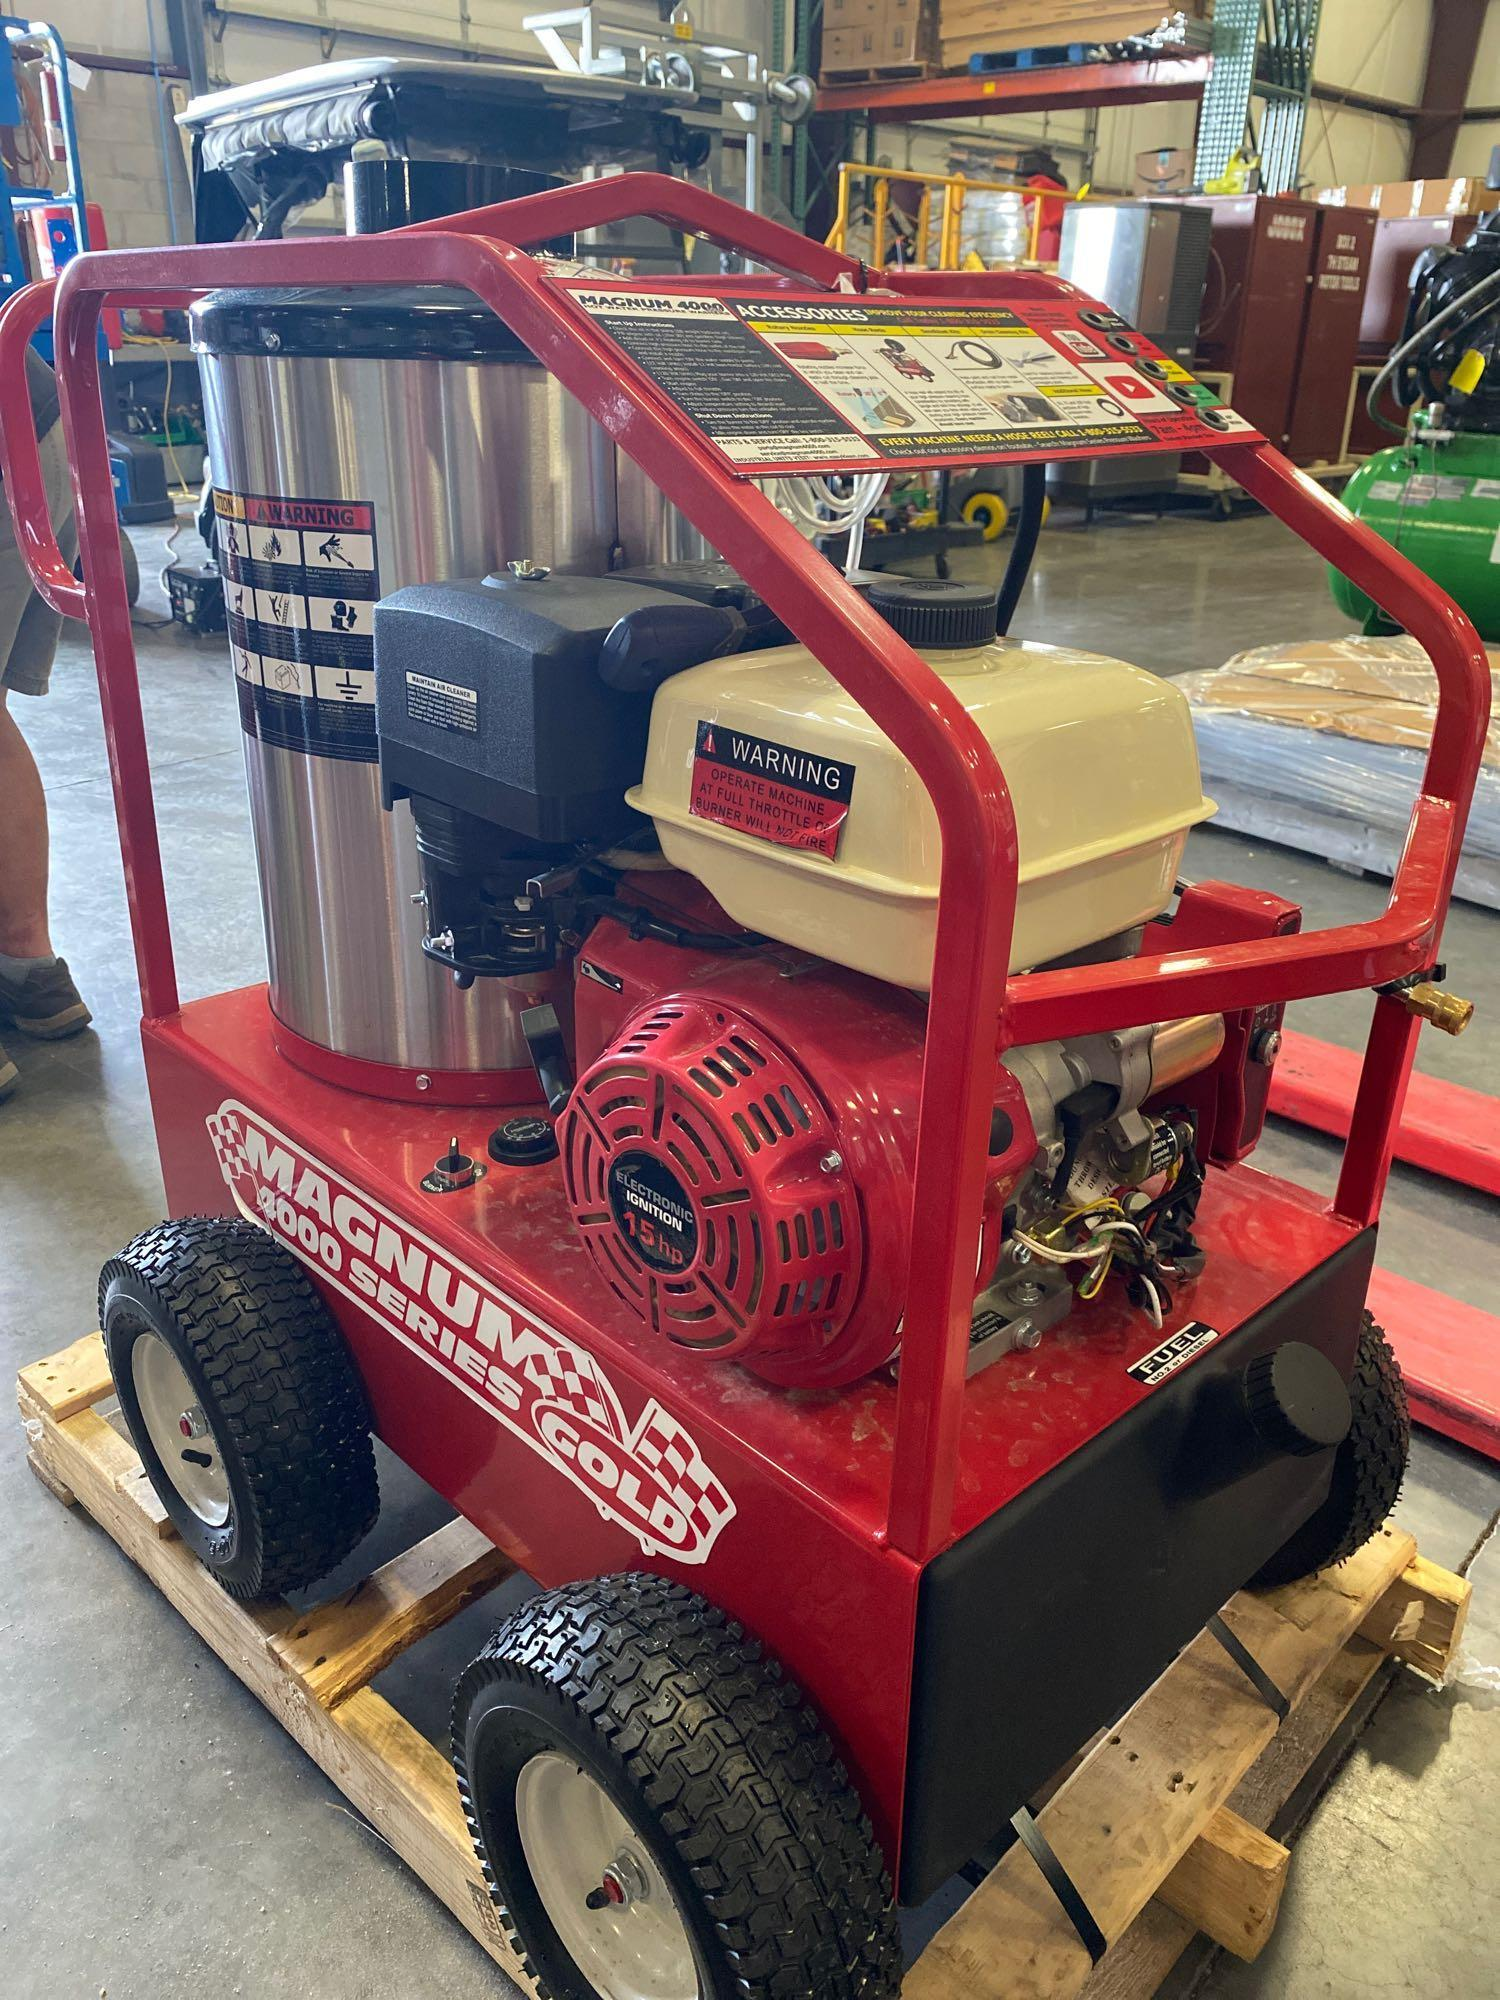 NEW/UNUSED 2020 MAGNUM 4000 HEATED PRESSURE WASHER, ELECTRIC START - Image 4 of 6